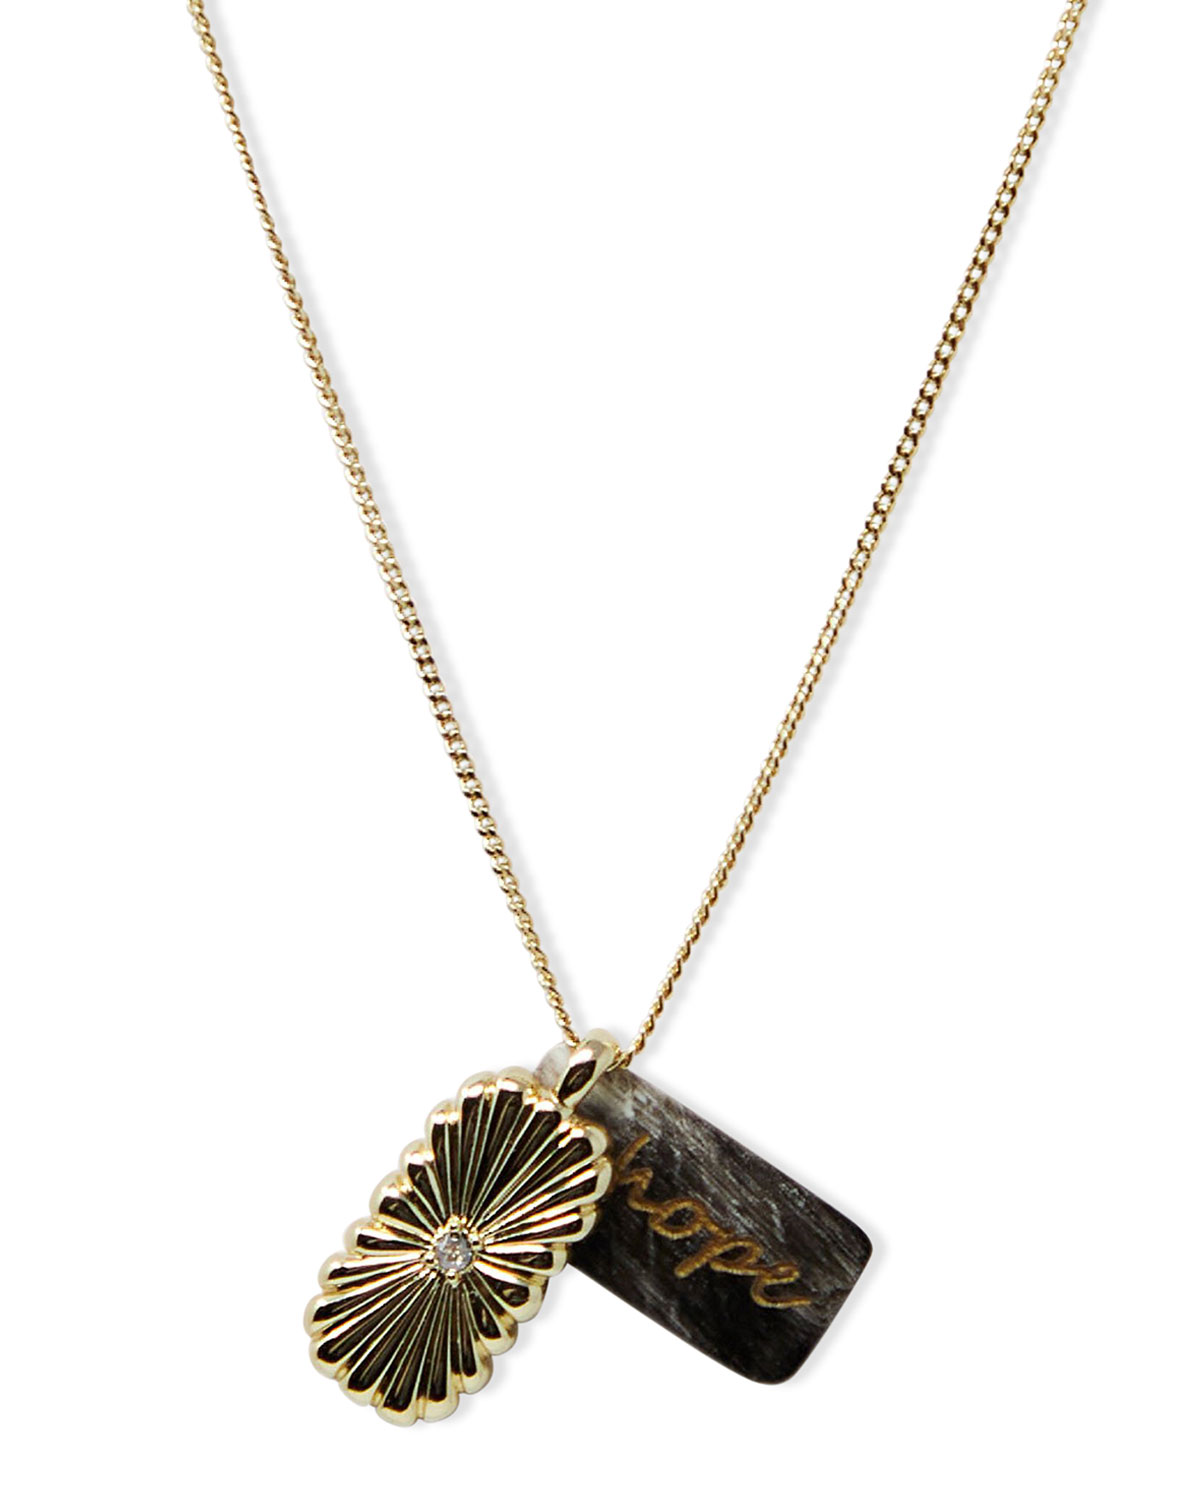 Hope Inspirational Chain Pendant Necklace with Horn in Black